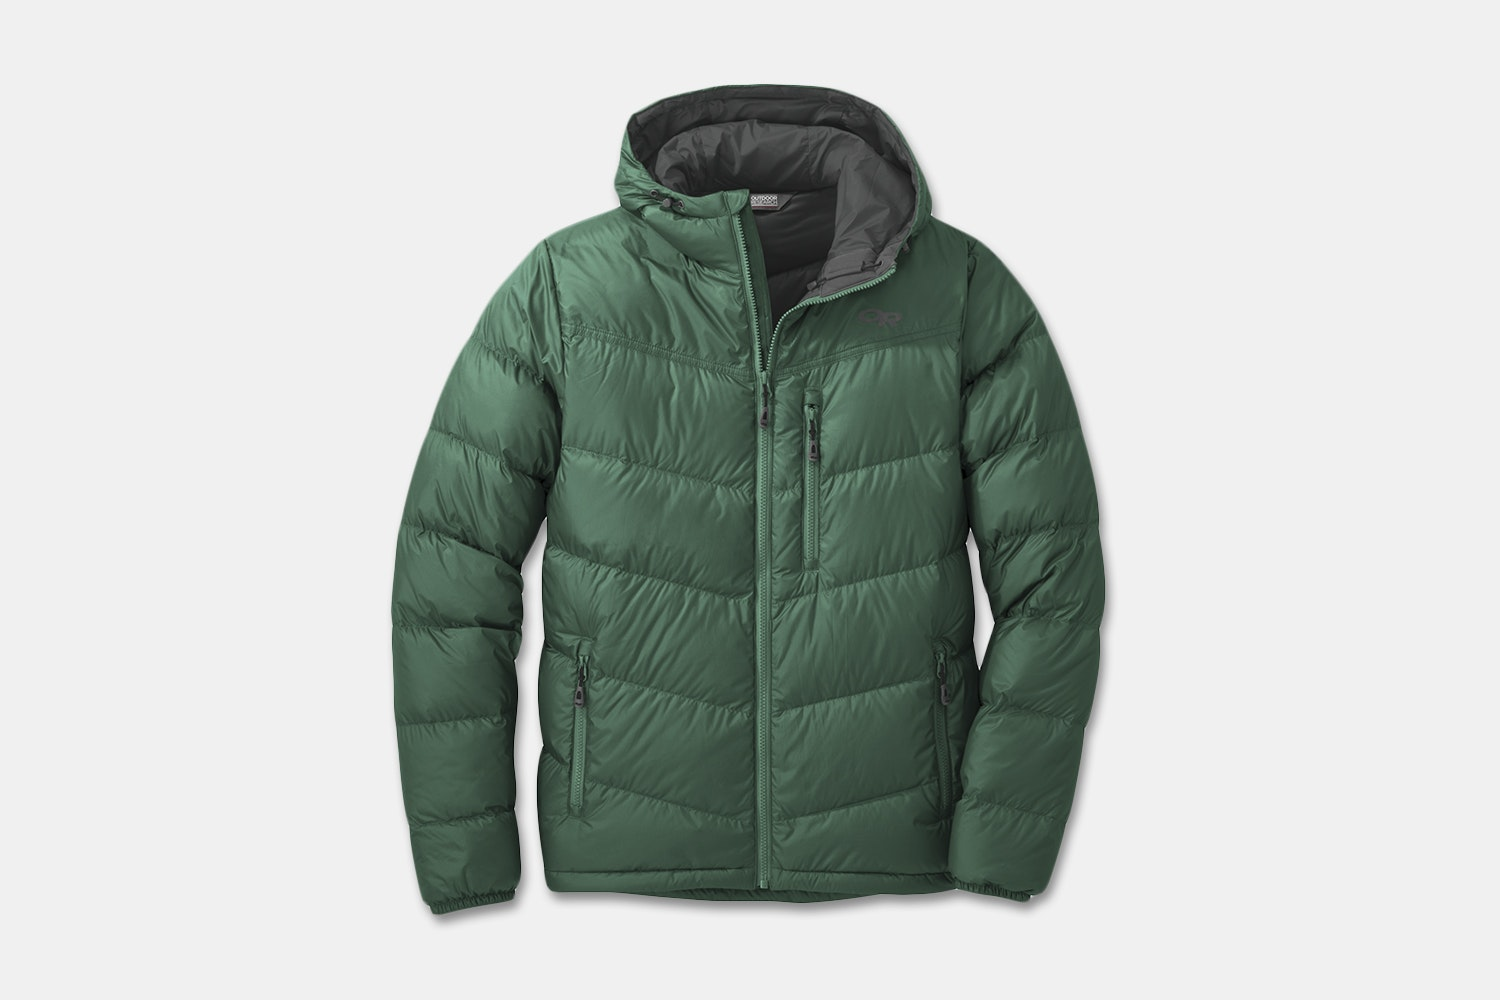 Men's – Hoody – Hemlock (+$20)